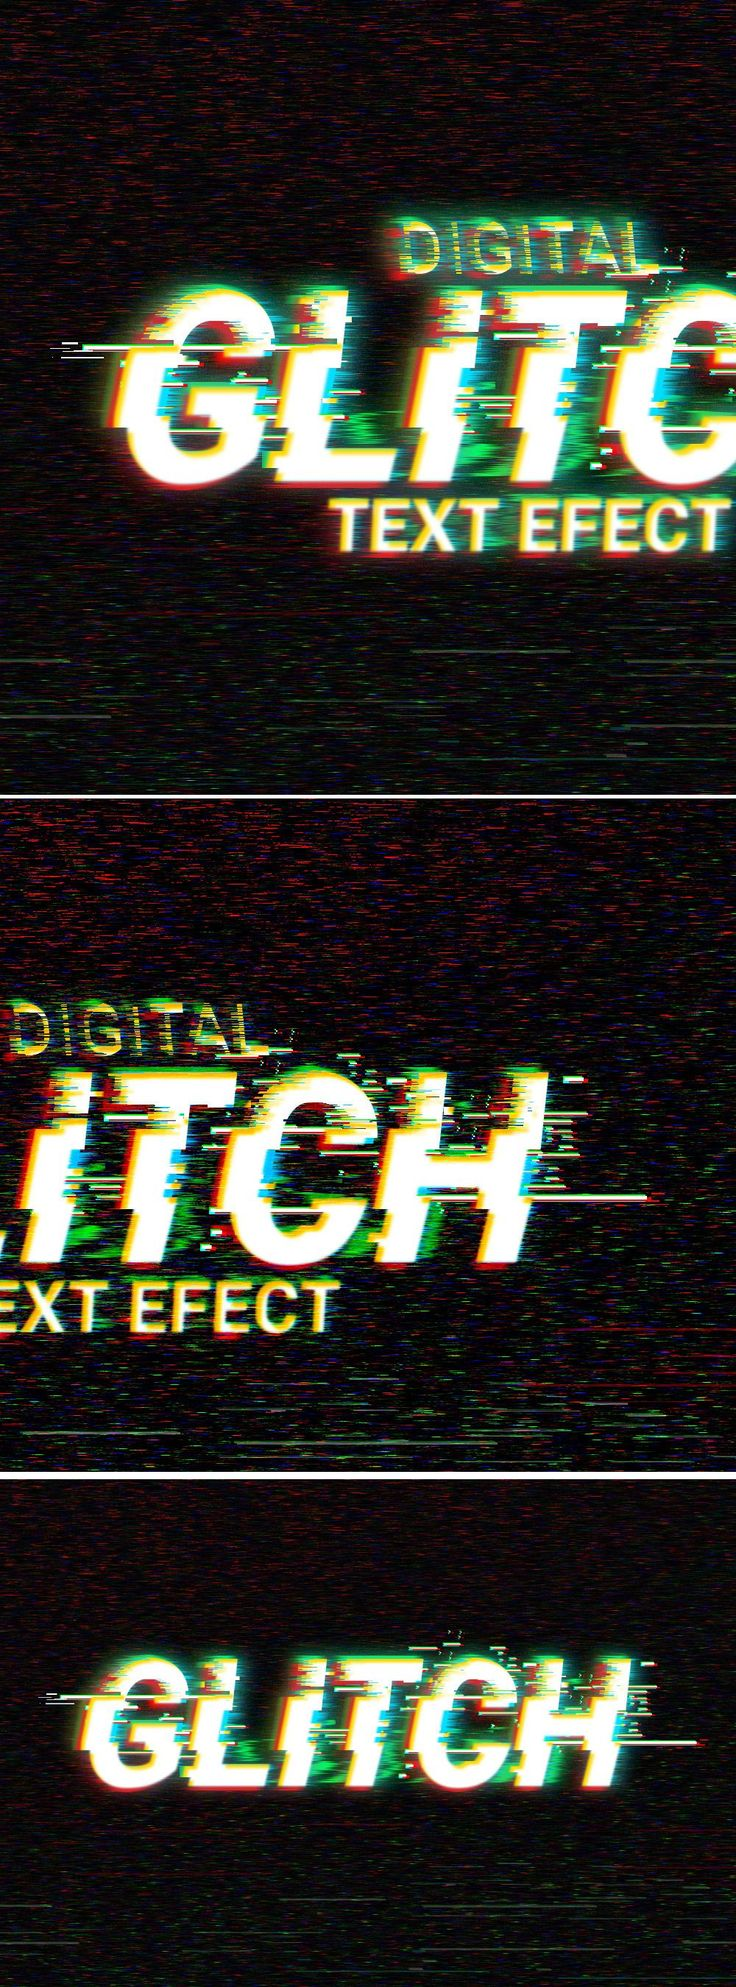 Digital Glitch #TextEffect #PSD To share with family, friends or anyone in between.